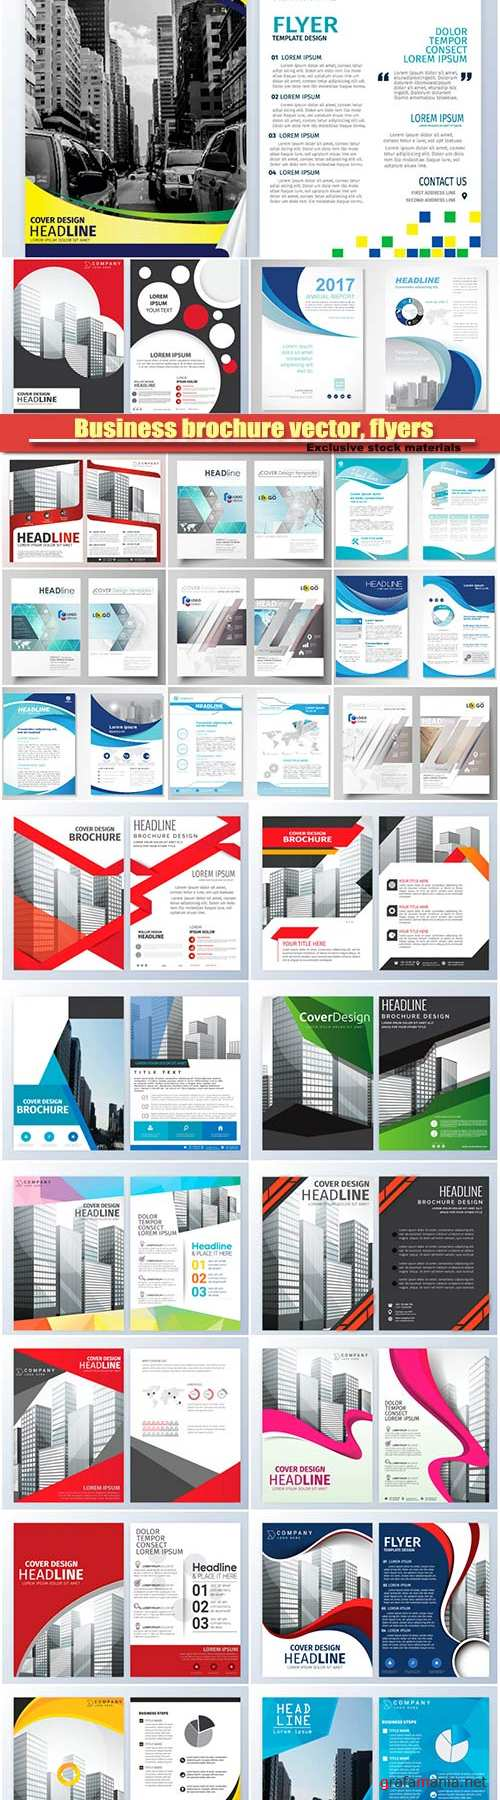 Business brochure vector, flyers templates #16